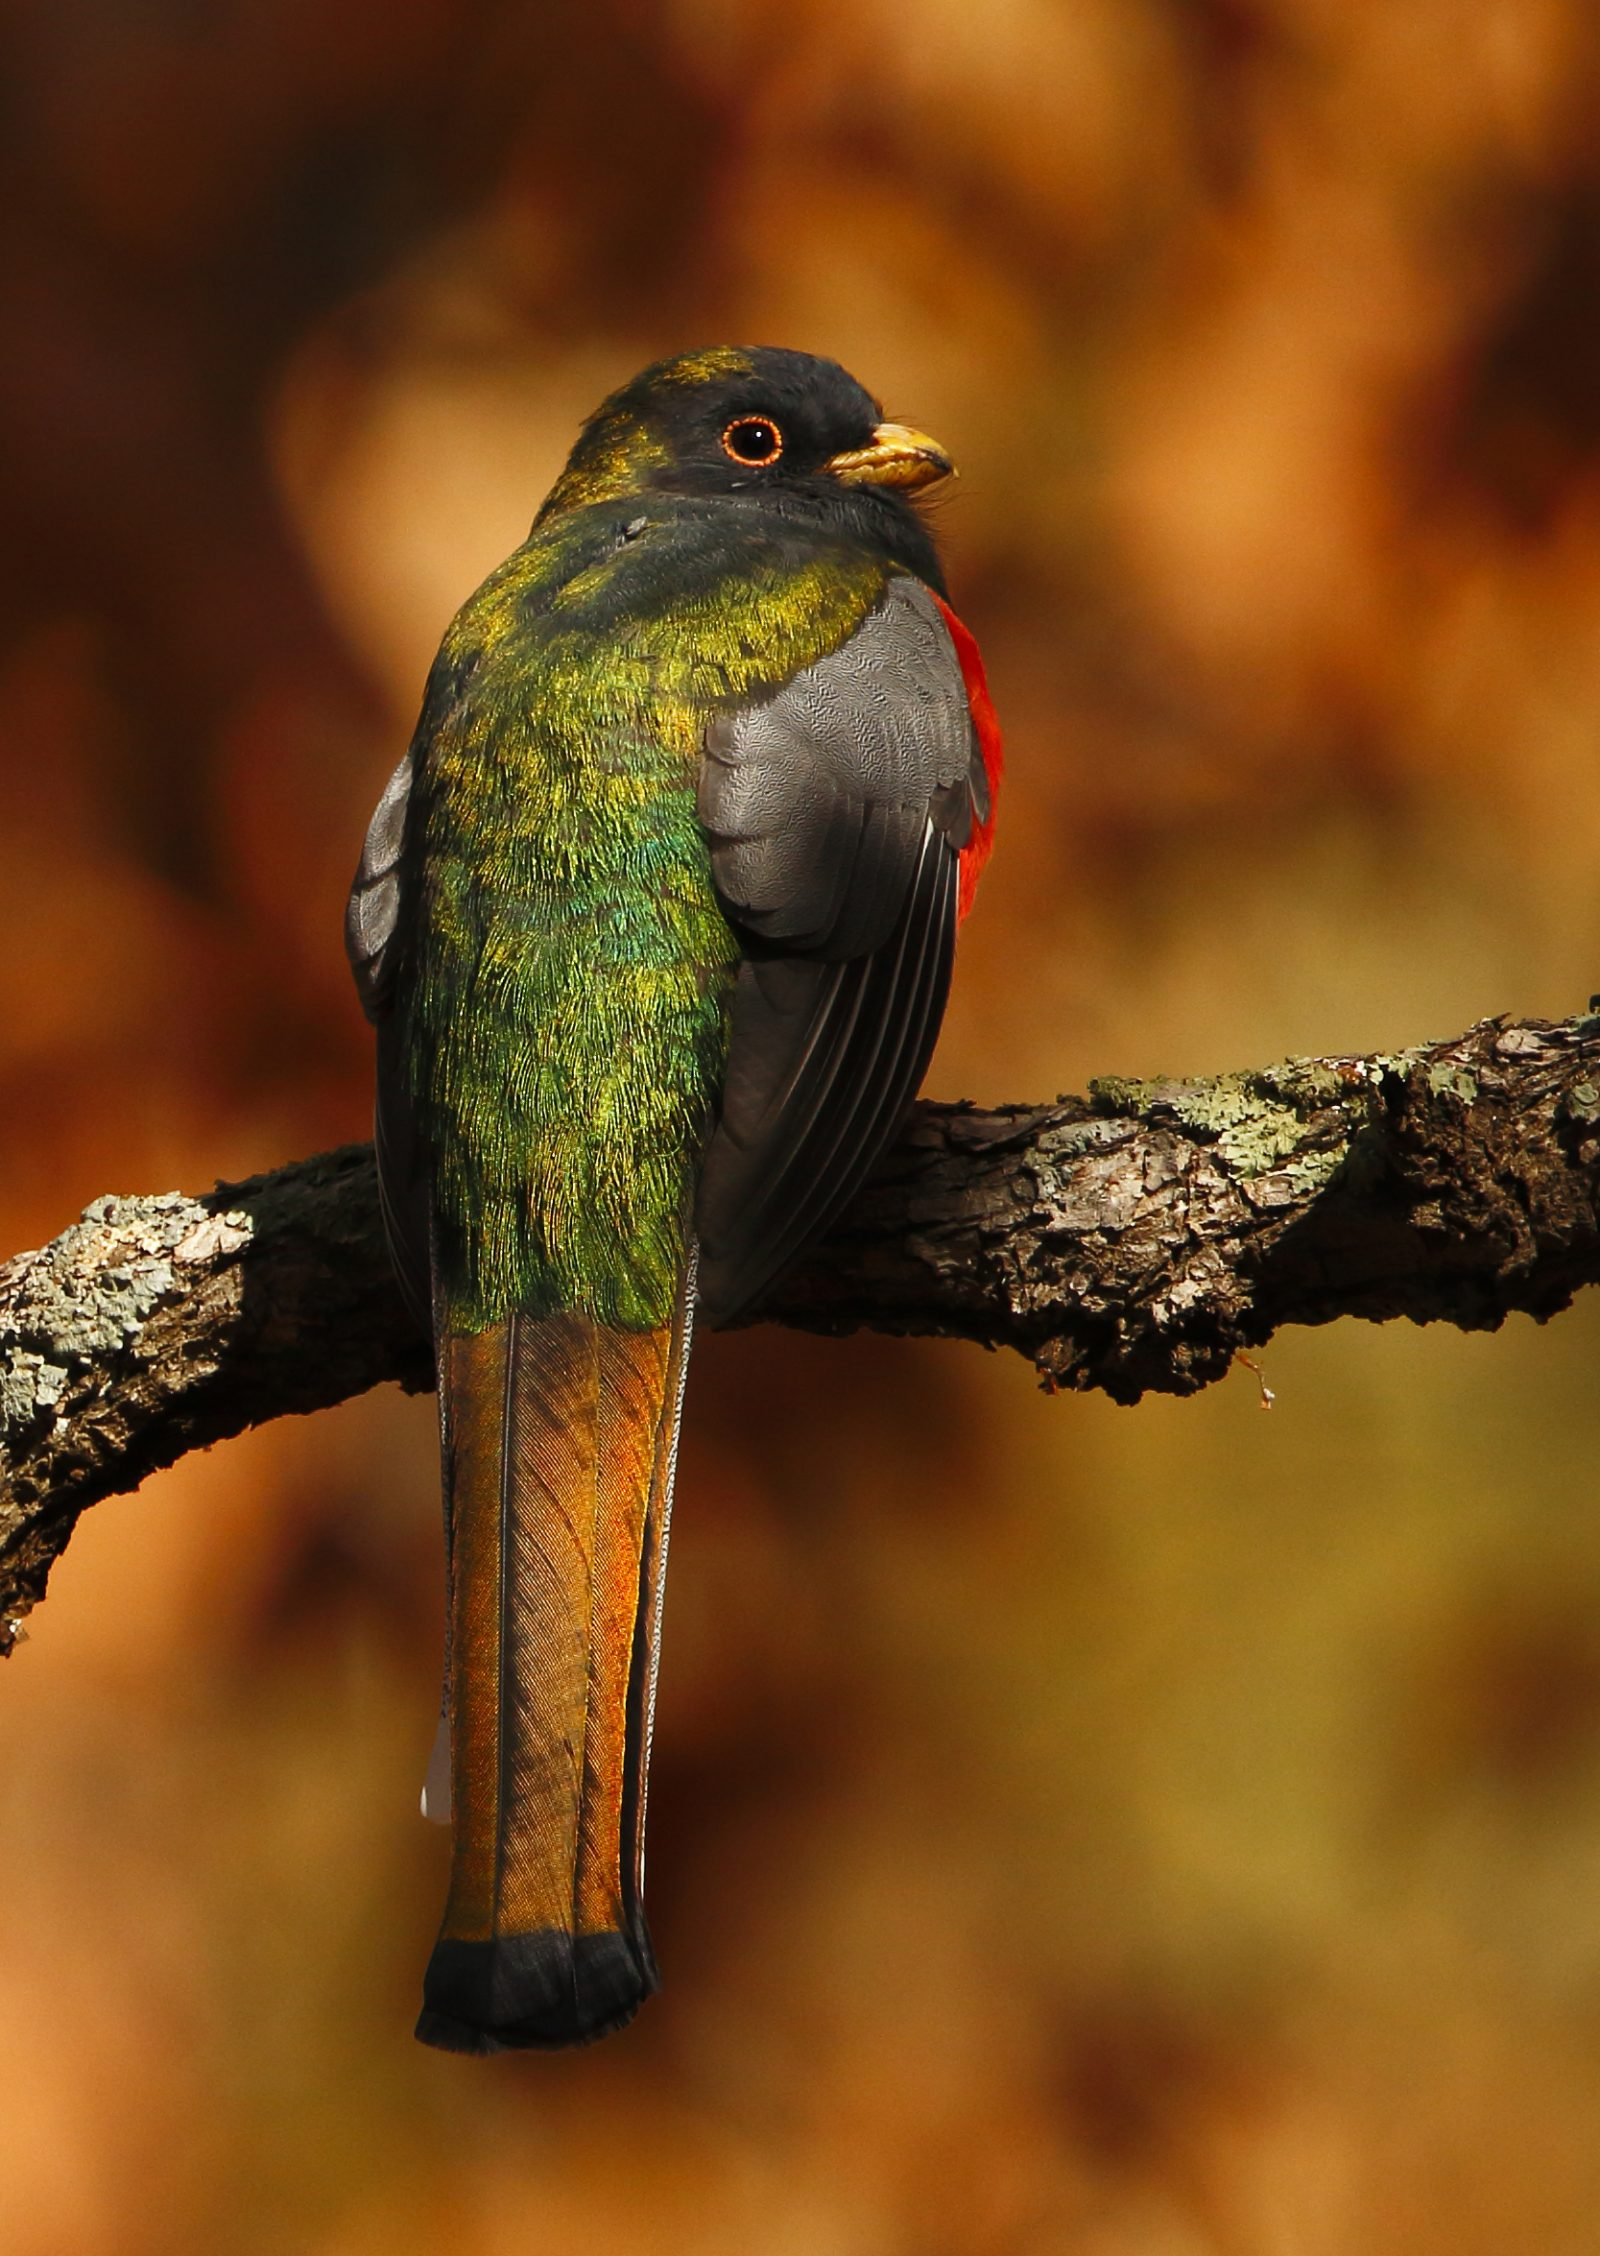 Male Elegant Trogon, Cave Creek Canyon in the Chiricahua Mountains, Arizona, December 10 2017